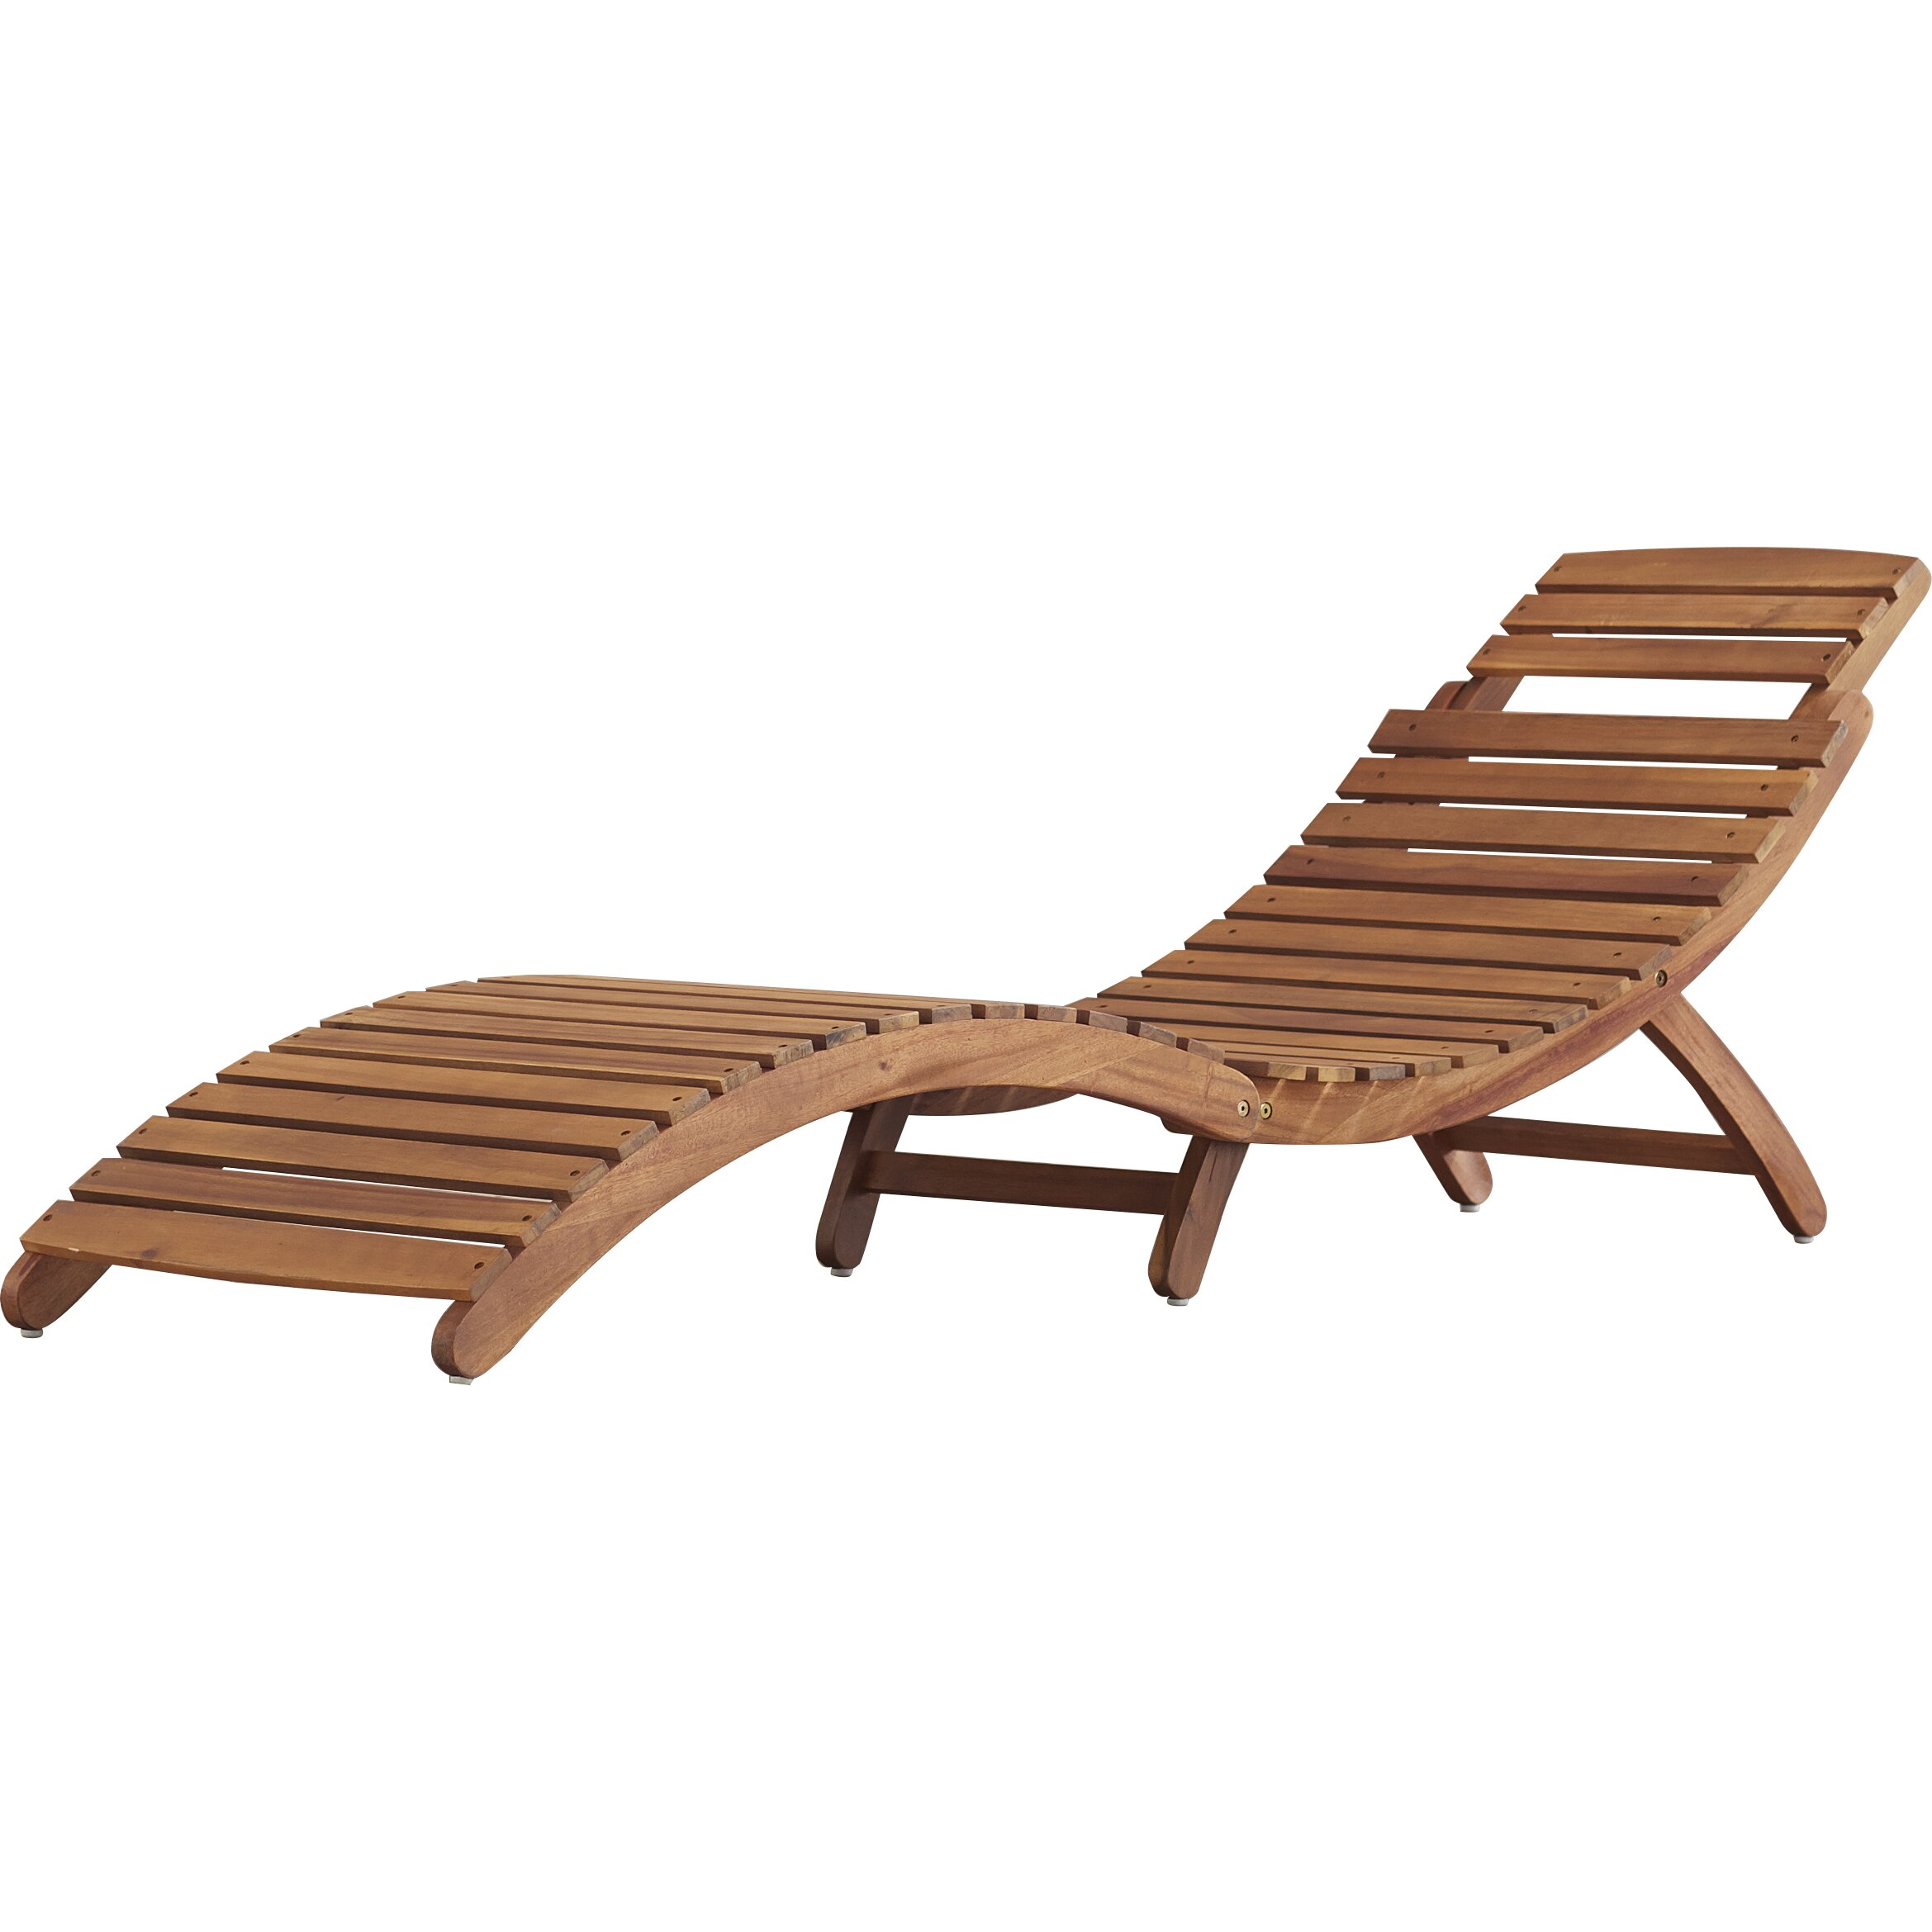 bay isle home philodendron wood outdoor chaise lounge reviews wayfair. Black Bedroom Furniture Sets. Home Design Ideas